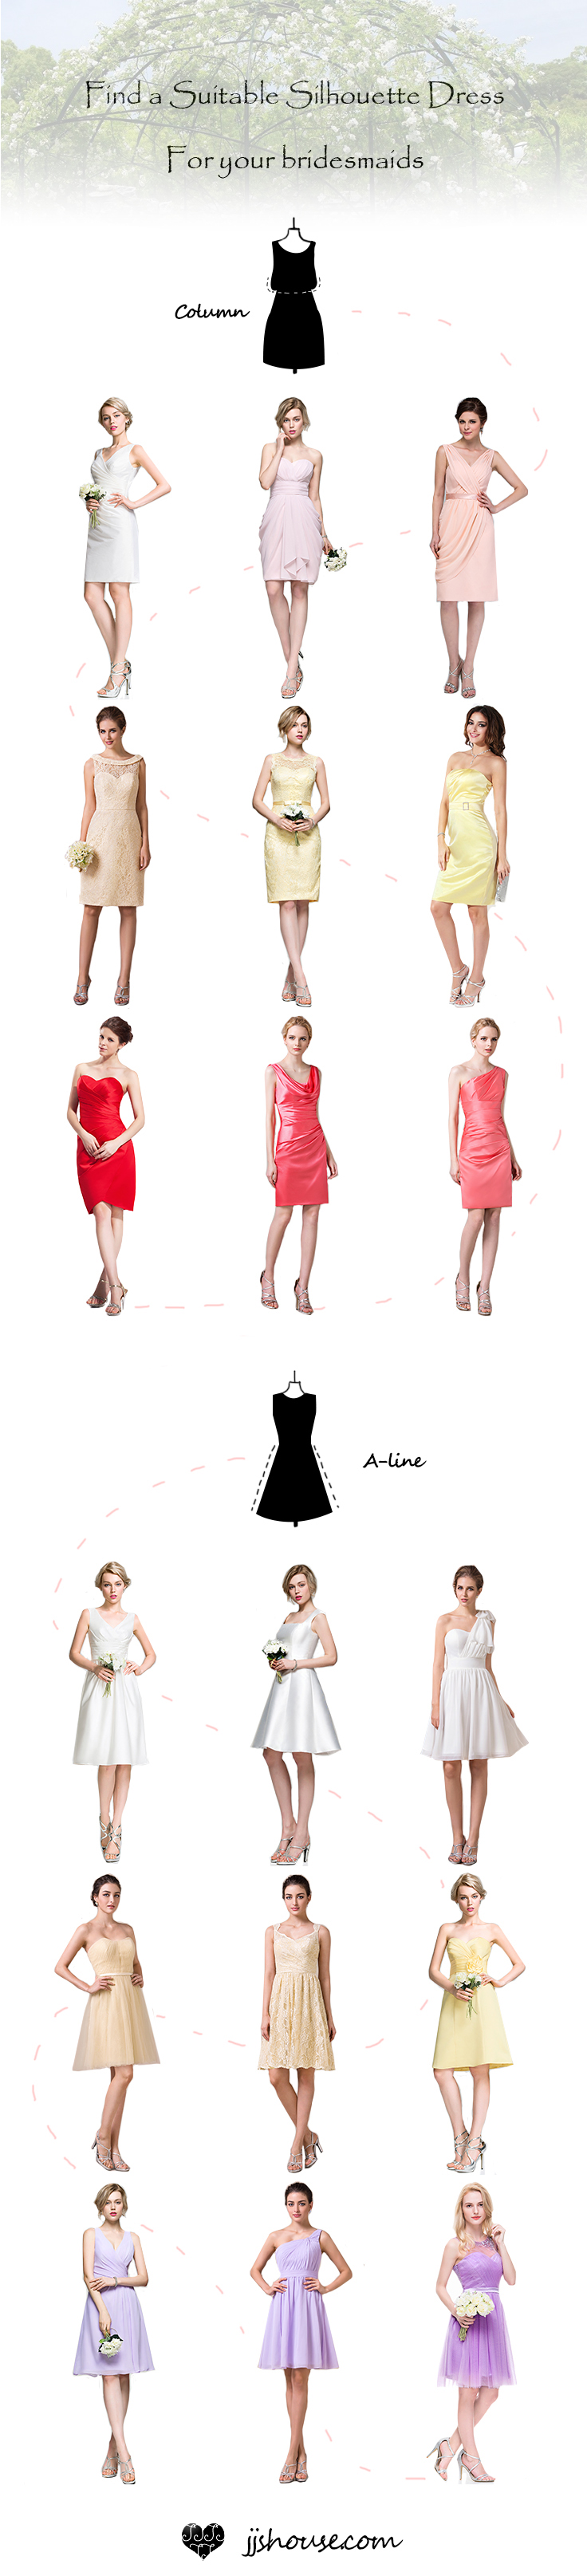 Find a Suitable Silhouette Dress For your Bridesmaids! Charming #bridesmaiddress